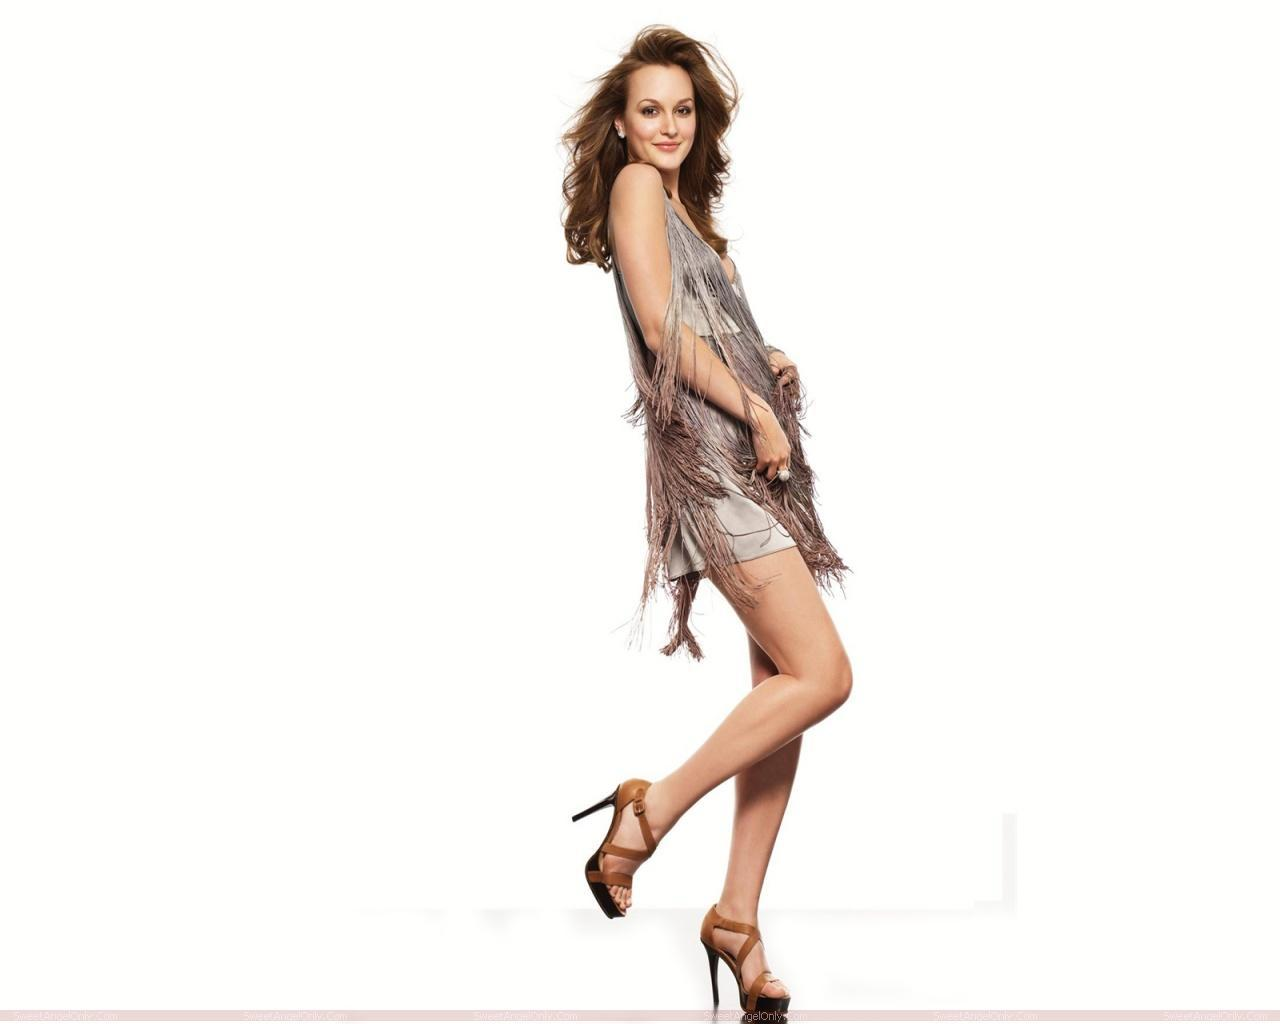 http://2.bp.blogspot.com/-cCNPr7pM9oY/TX-wlgruLUI/AAAAAAAAFqE/2c4_vBHwW_I/s1600/leighton_meester_hollywood_hot_actress_wallpaper_sweetangelonly_11.jpg